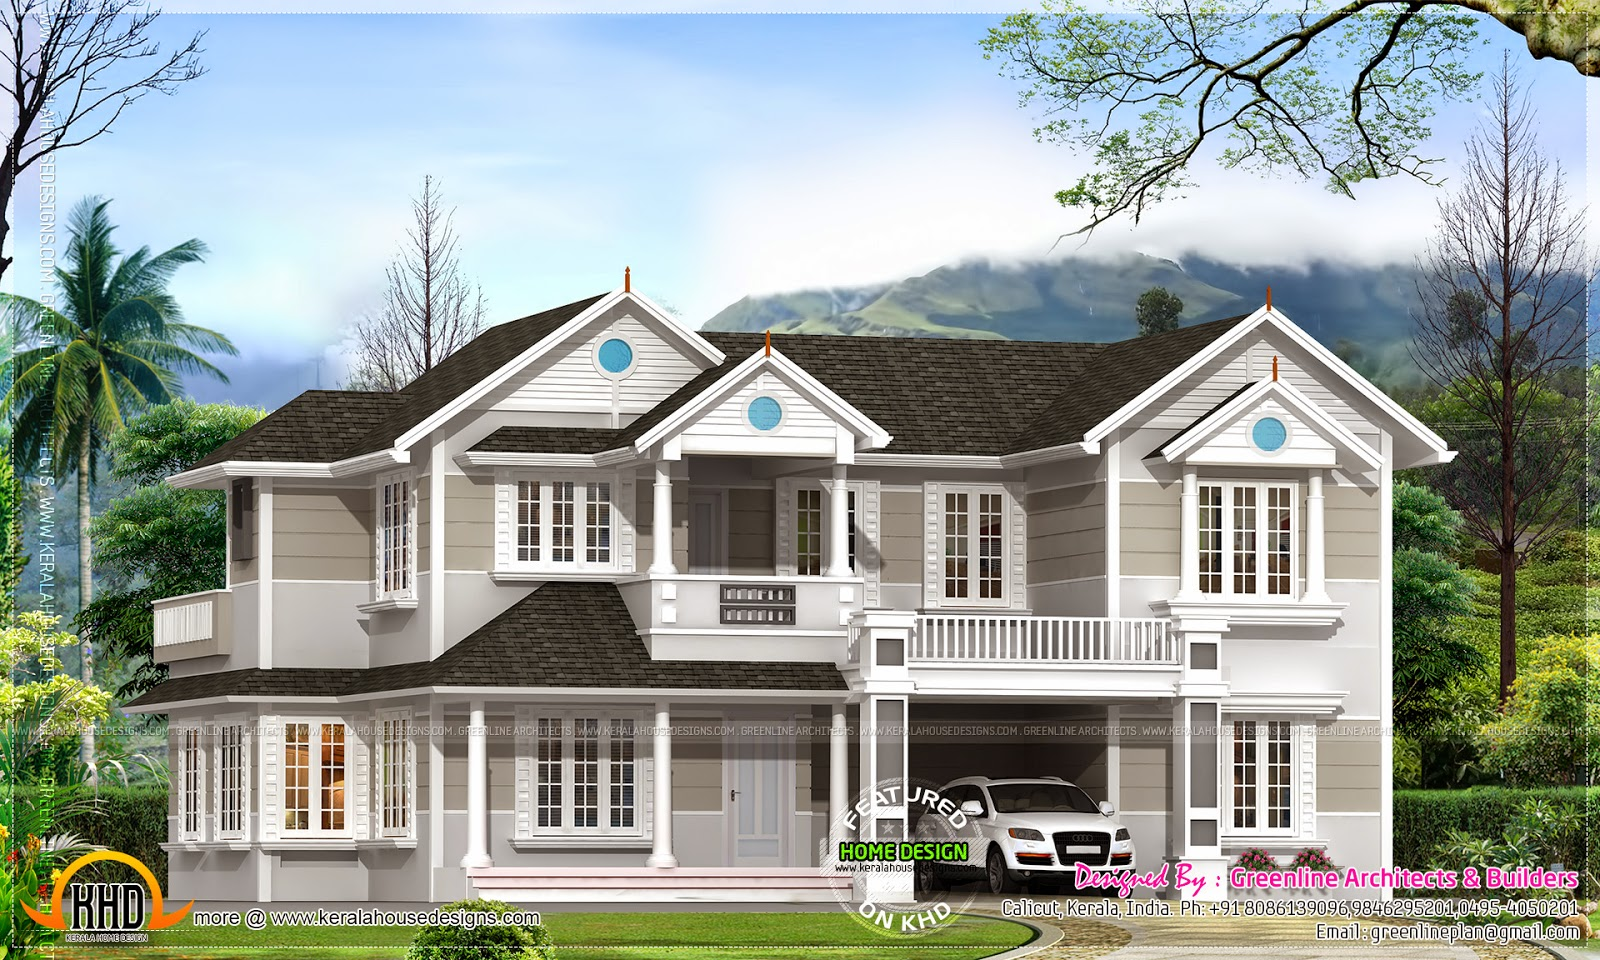 Colonial house plan kerala home design and floor plans Colonial style homes floor plans